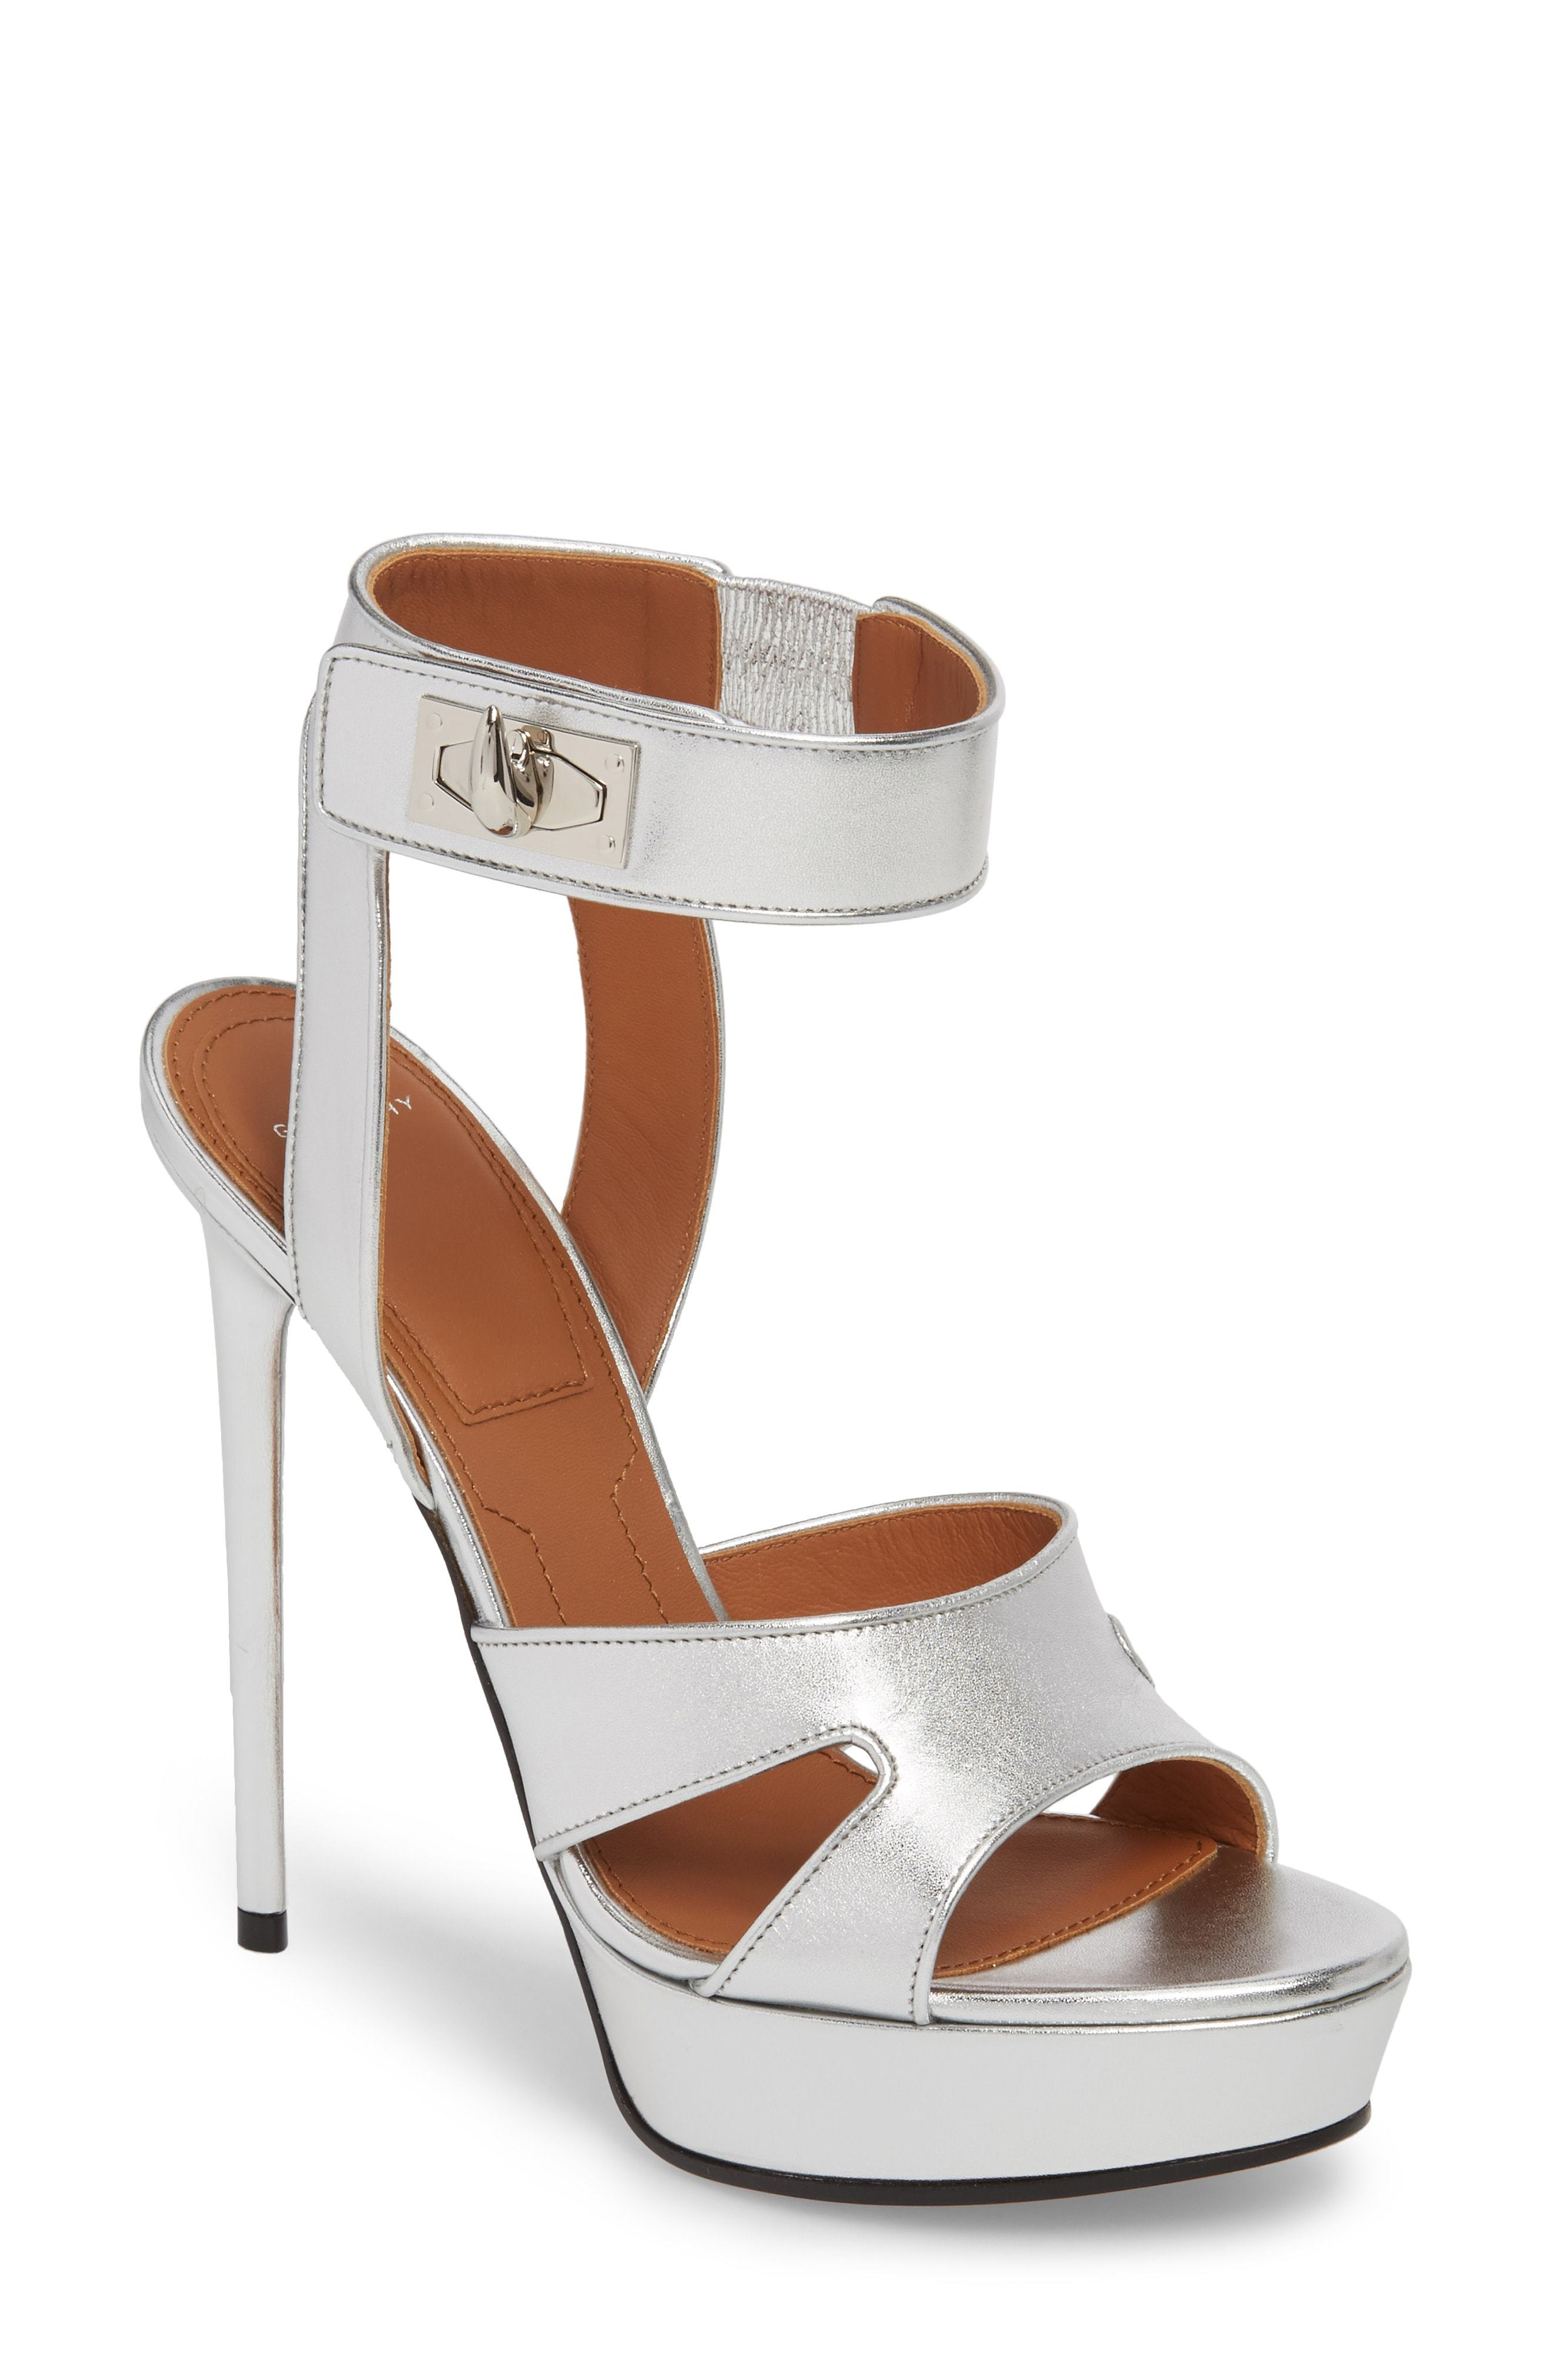 Shark Tooth Givenchy Sandal674Nordstrom Givenchy Sandal674Nordstrom Platform Tooth Shark Platform wP0O8kn